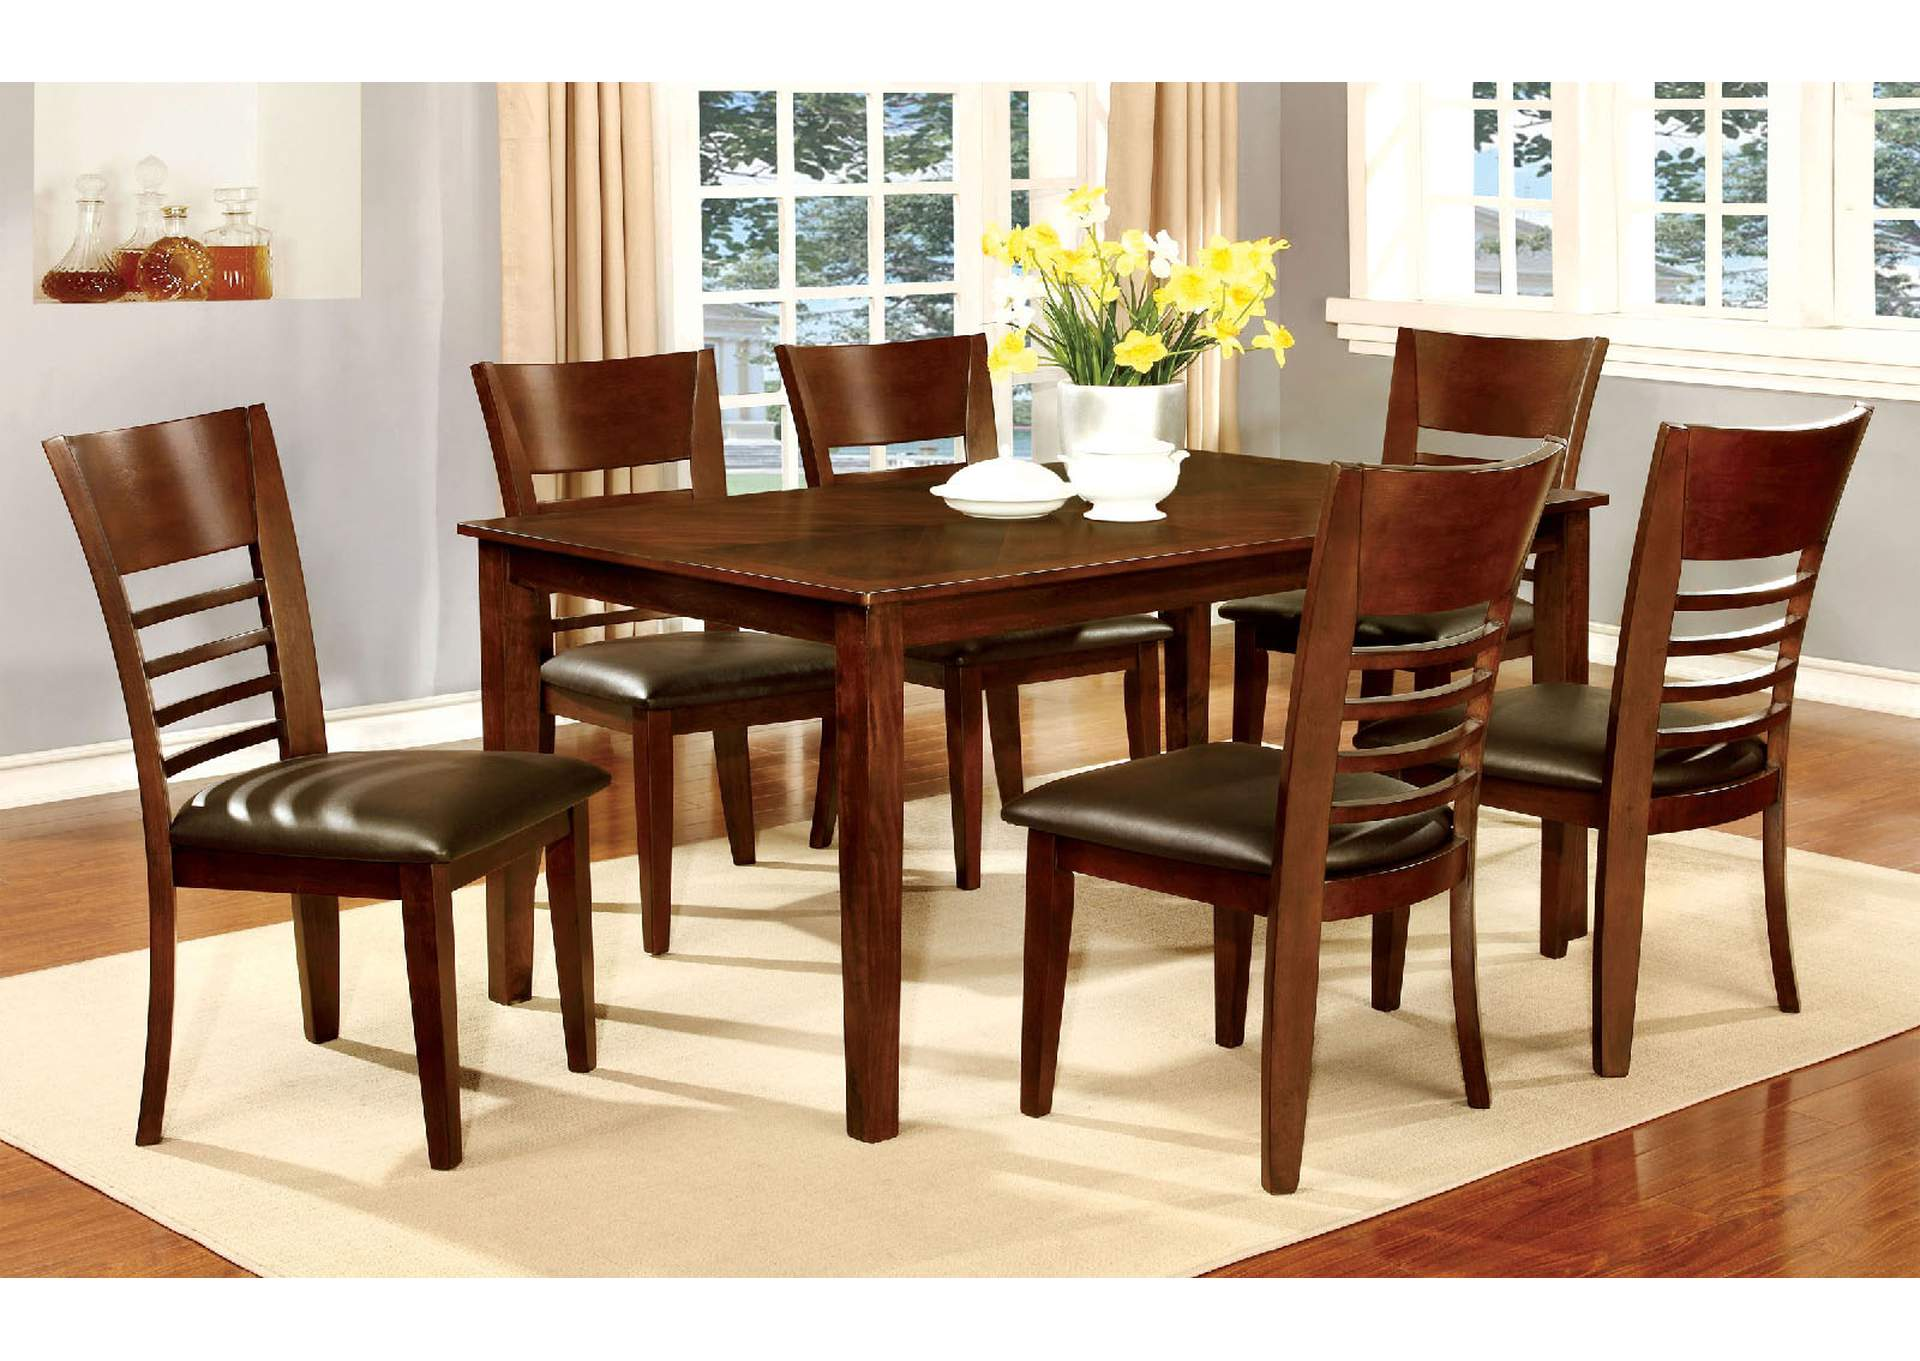 "Hillsview I Brown Cherry 60"" Dining Table w/4 Side Chairs,Furniture of America"